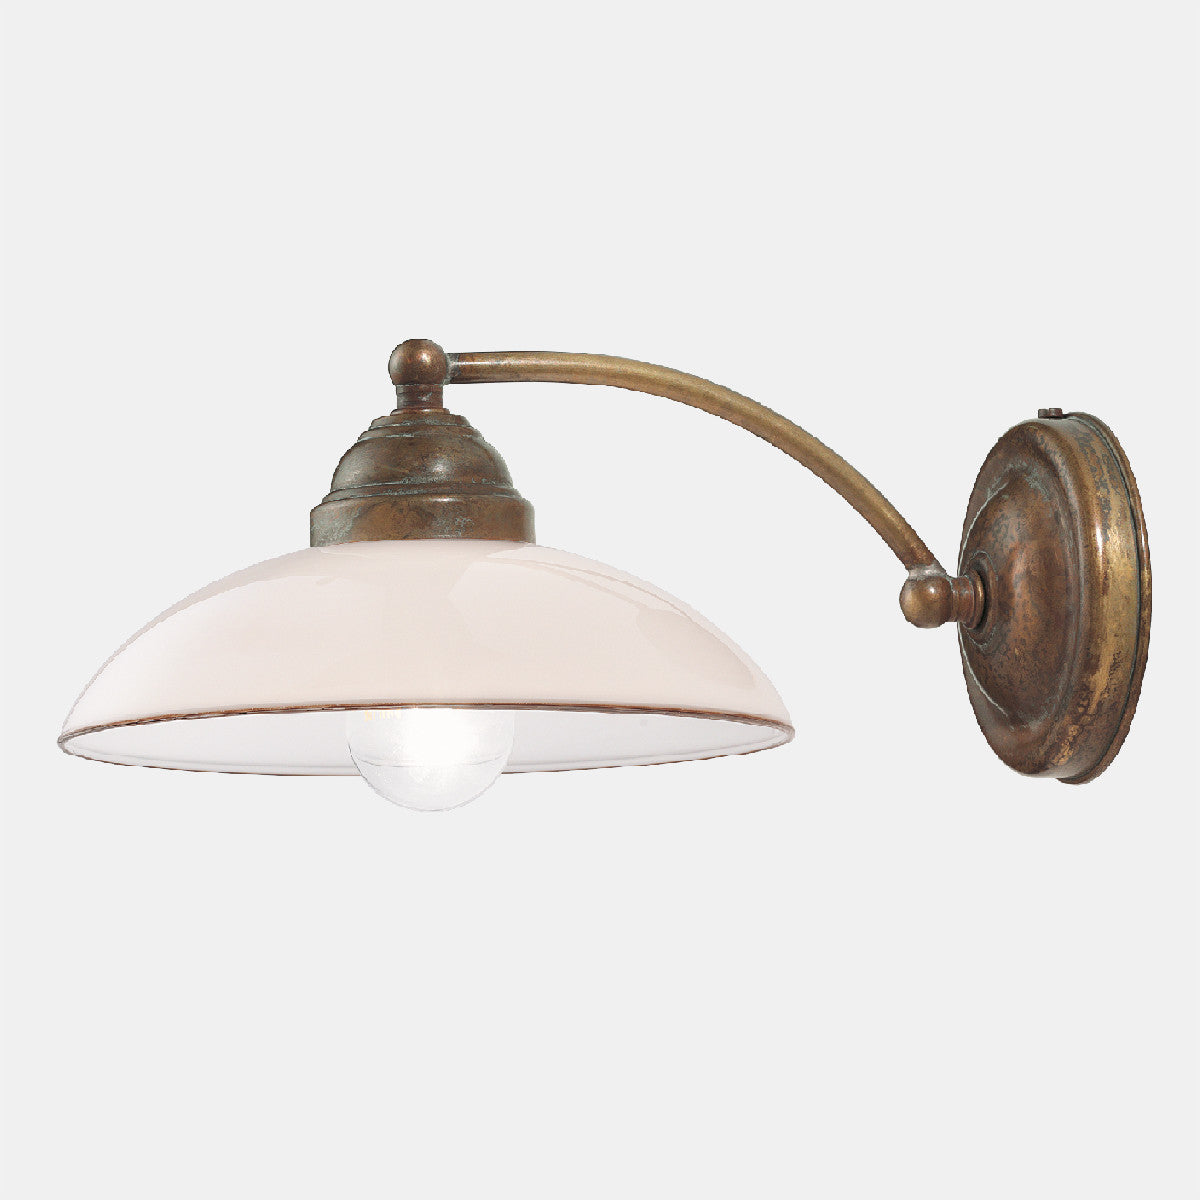 Il Fanale COUNTRY Wall Light 082.17.OV | touchGOODS